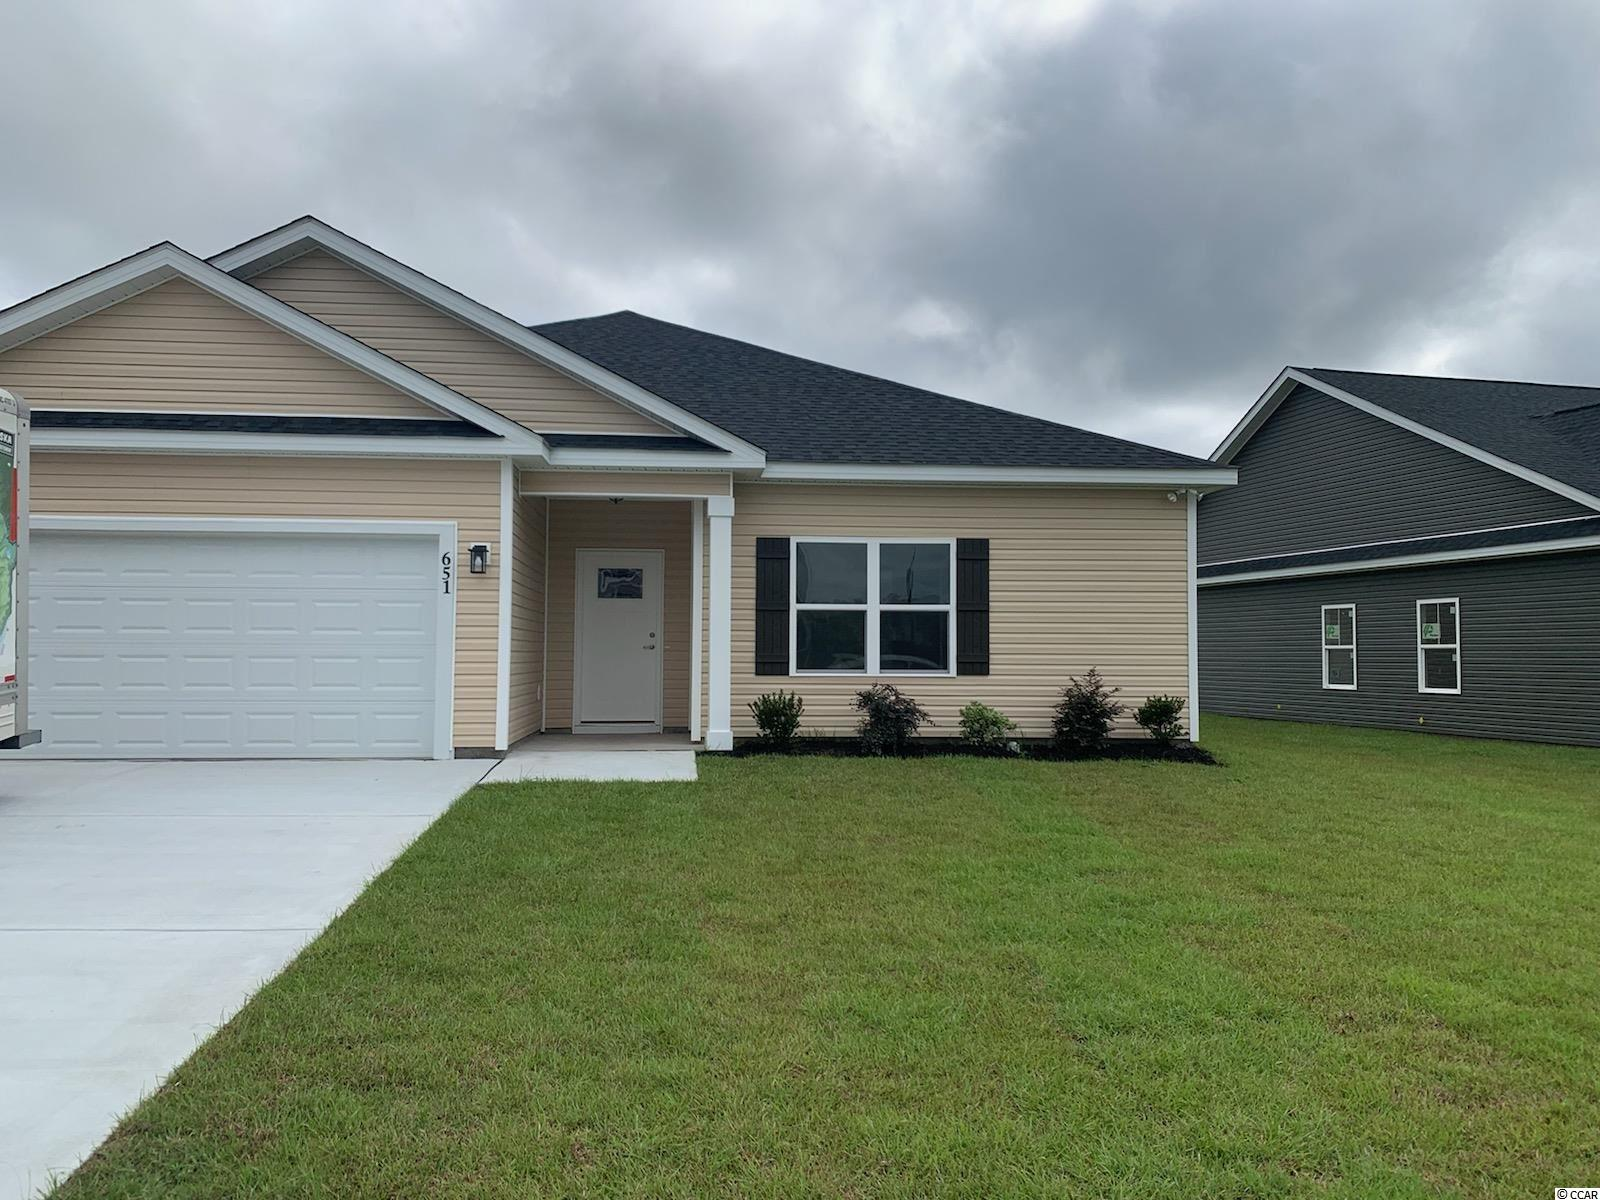 New Community. This is a to be built home and several more being built in this small community with only 22 homes close to Highway 22 and International Dr in Conway. 20 minutes to the beach, golf, fine restaurants, and so much more.